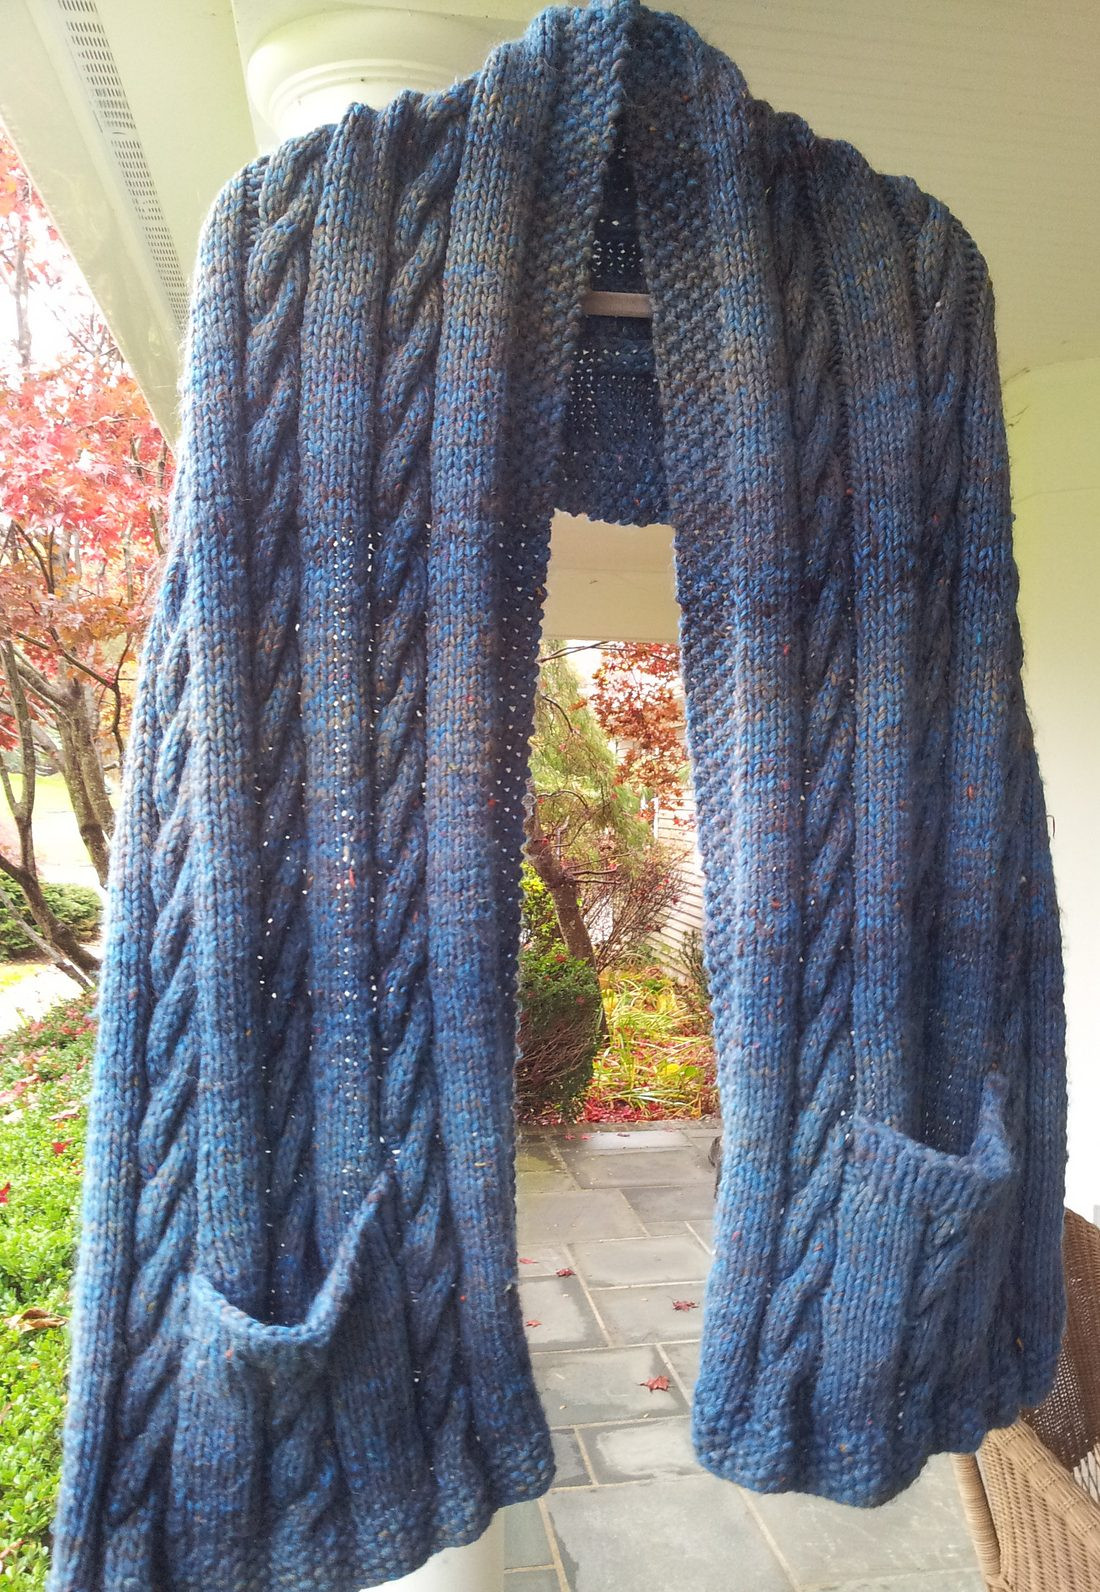 Awesome Super Bulky Yarn Knitting Patterns Knitting Design Of Incredible 42 Images Knitting Design